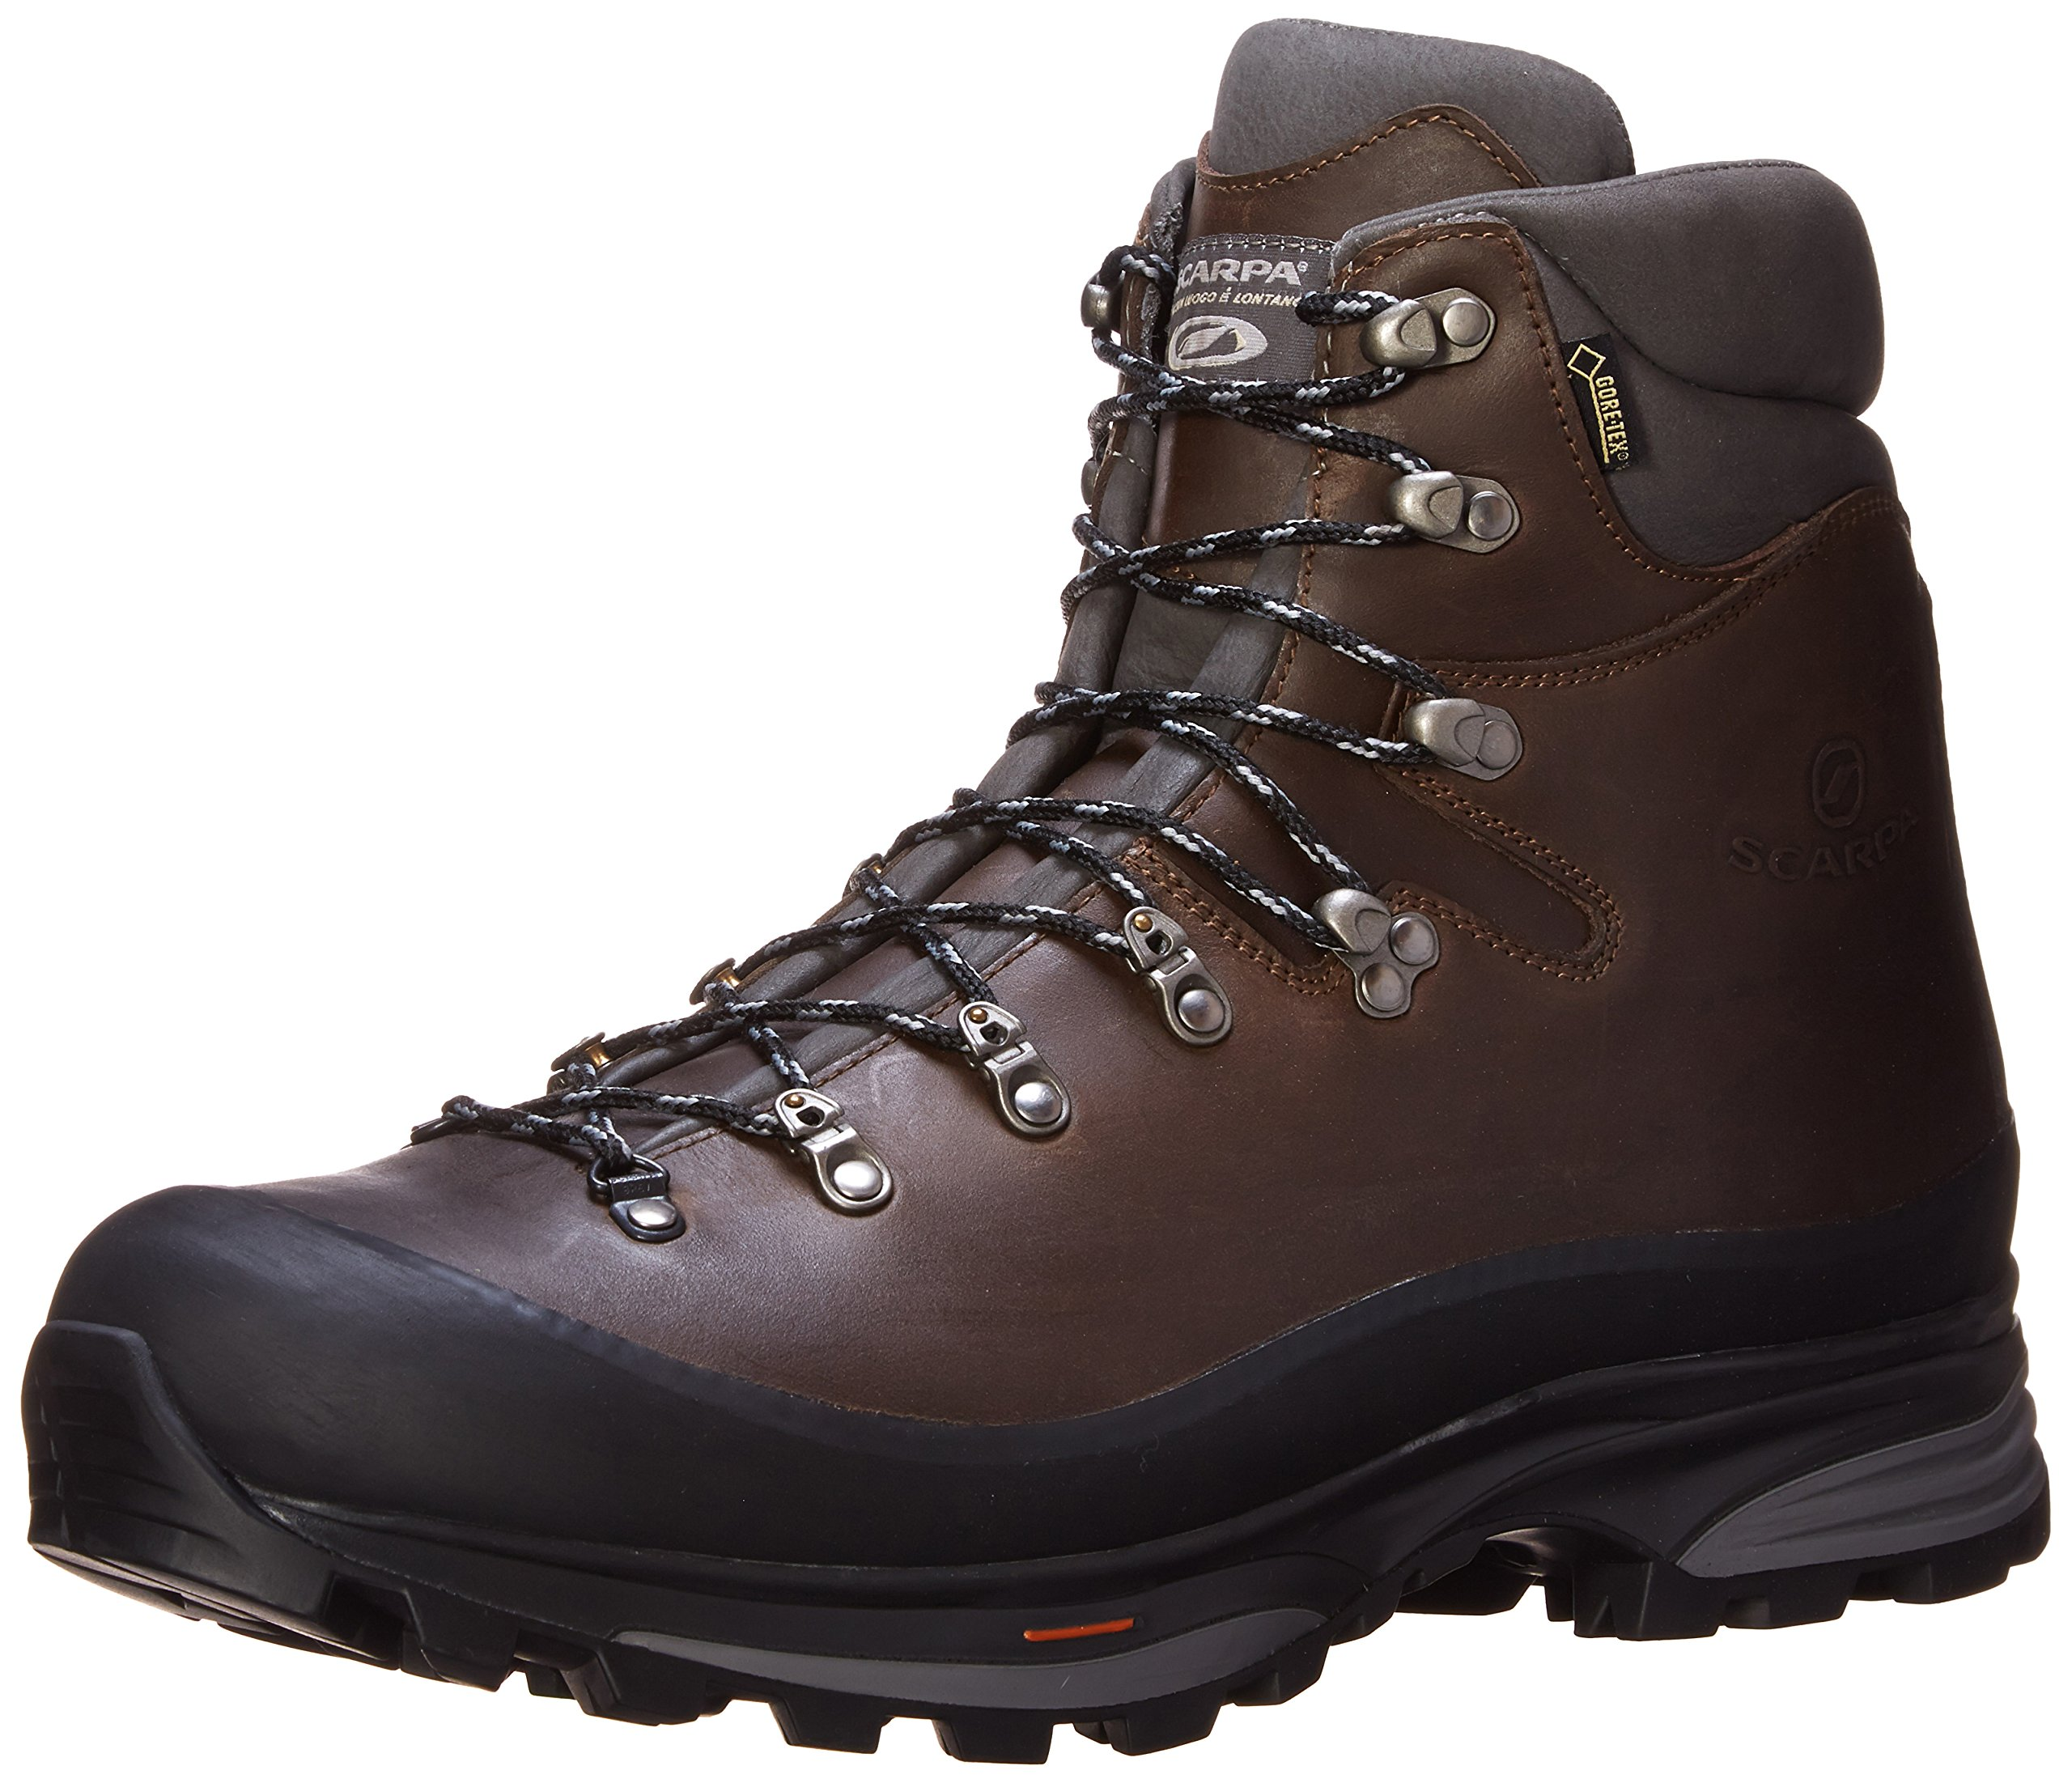 burly mid boots vojo texapore shoes hiking comforter comfortable most jack wolfskin waterproof men hike yellow